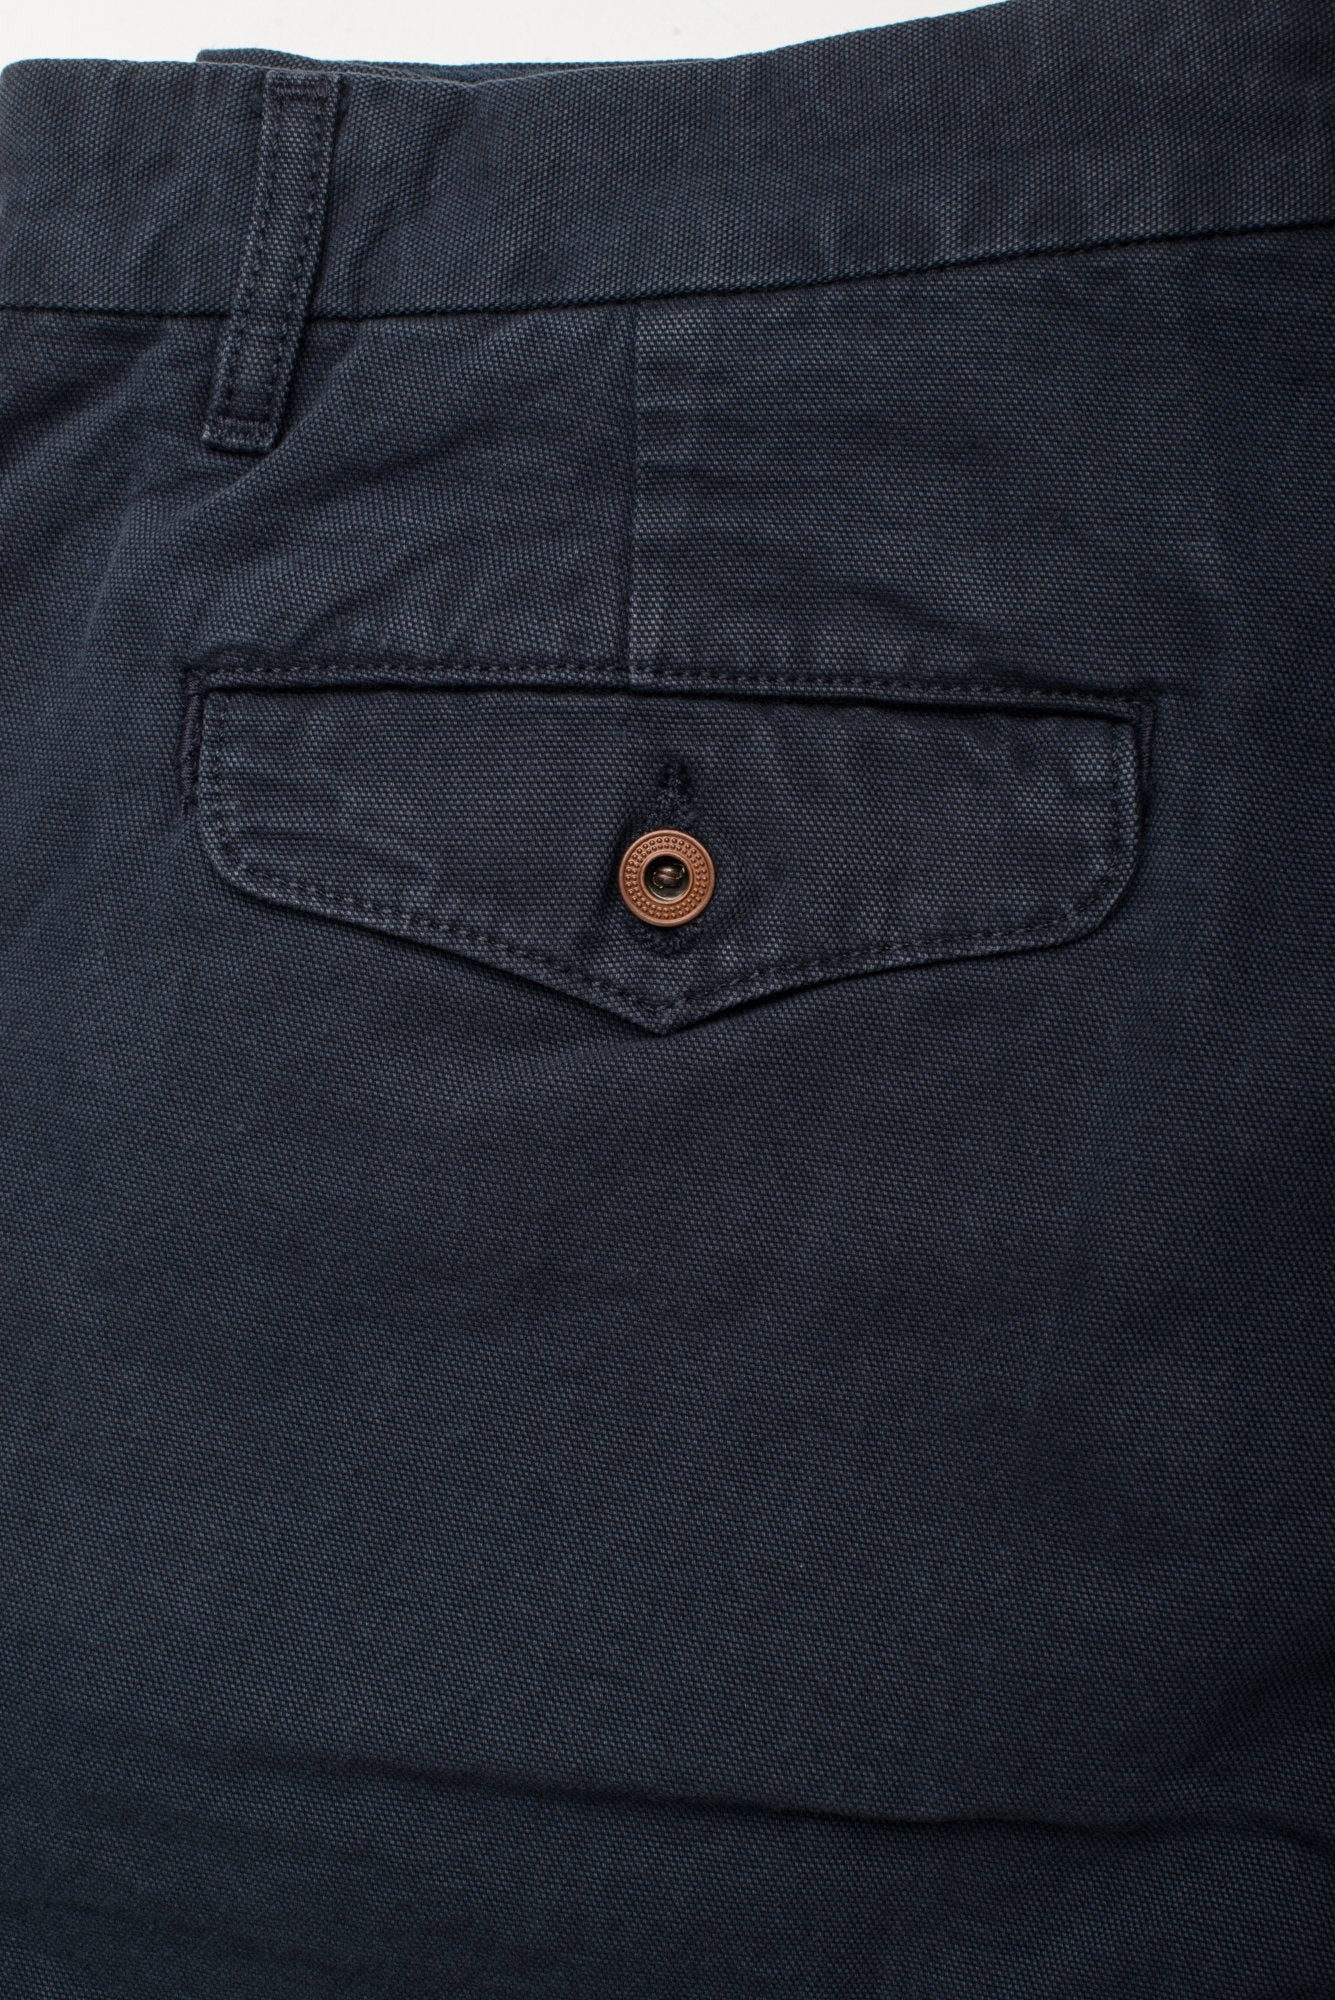 Freenote - Workers Chino Slim Straight - Navy - The Populess Company